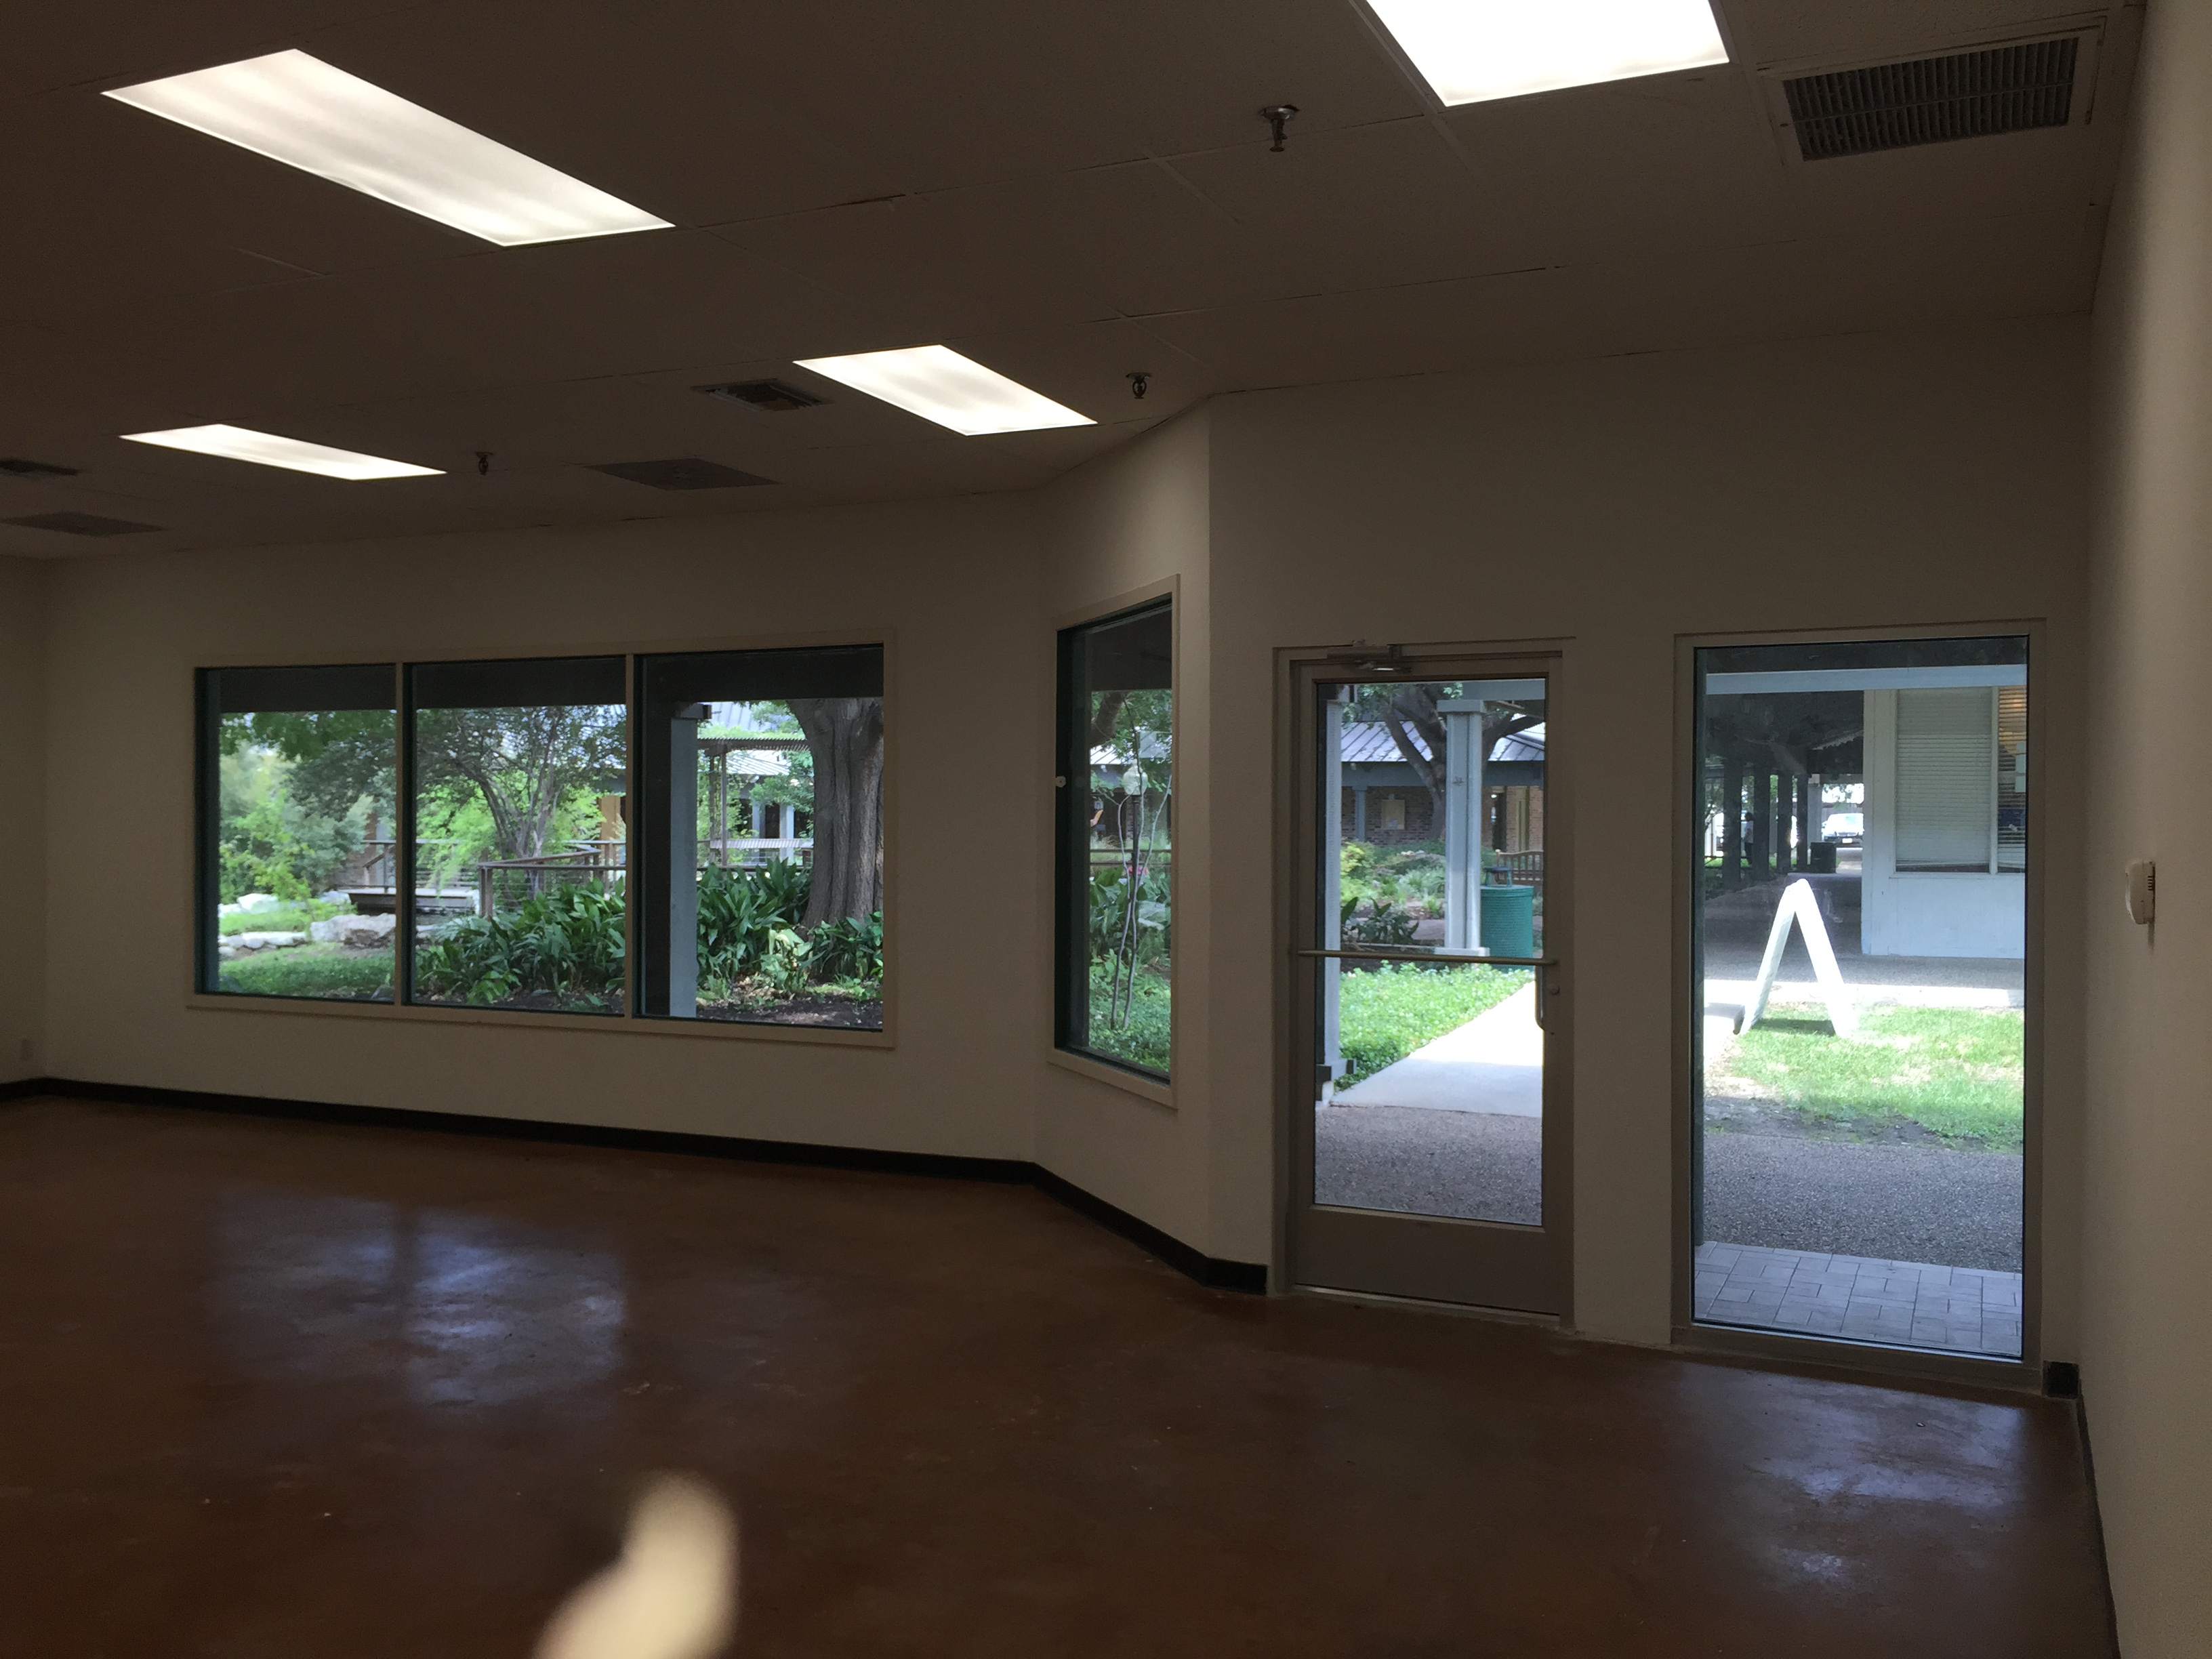 an image of a vacant storefront taken with an iPhone